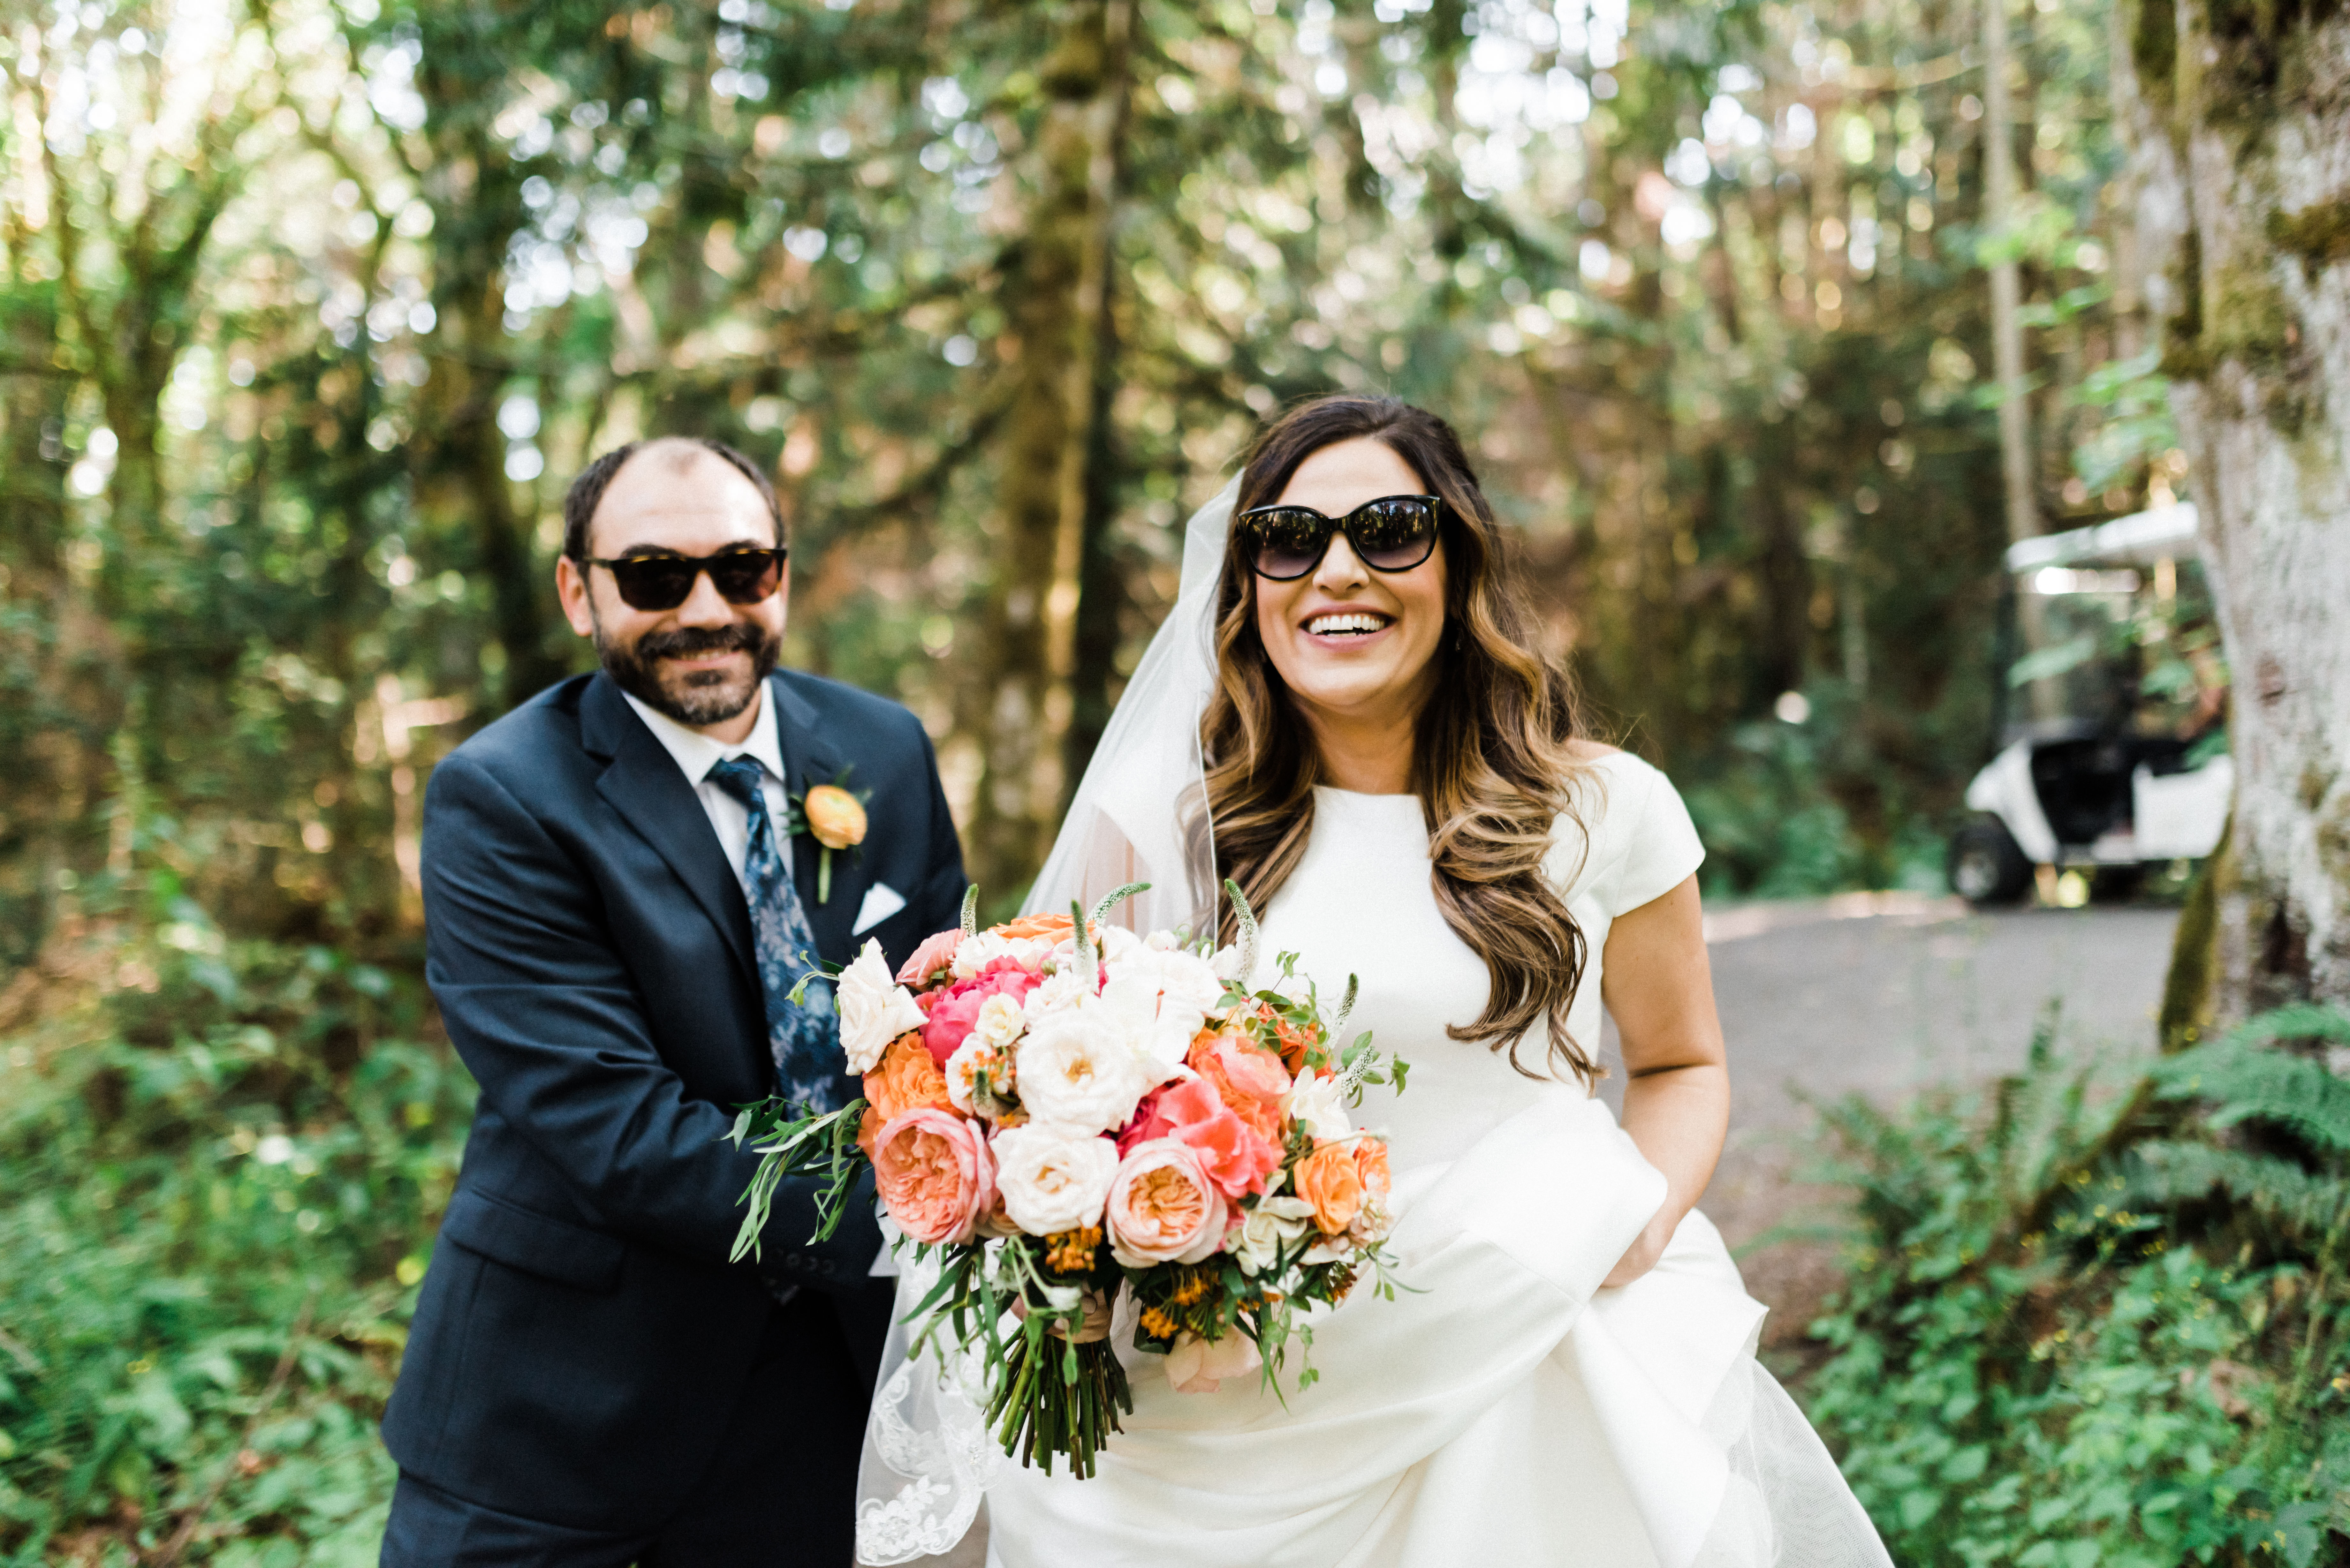 a wedding couple in sunglasses at IslandWood, an Outdoor Wedding Venue